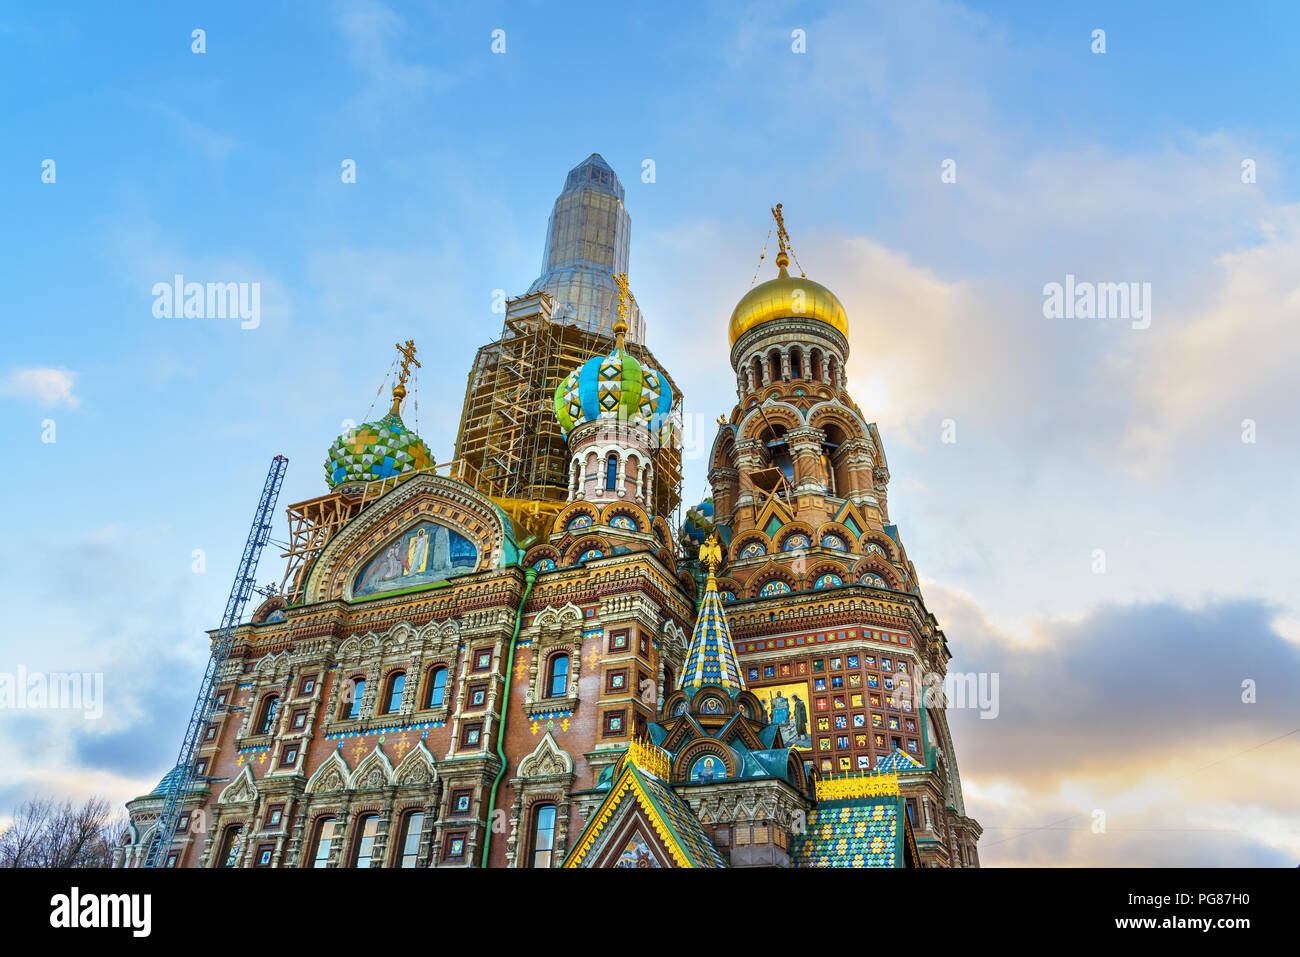 Church of the Savior on Blood in winter. Saint Petersburg, Russia - Stock Image